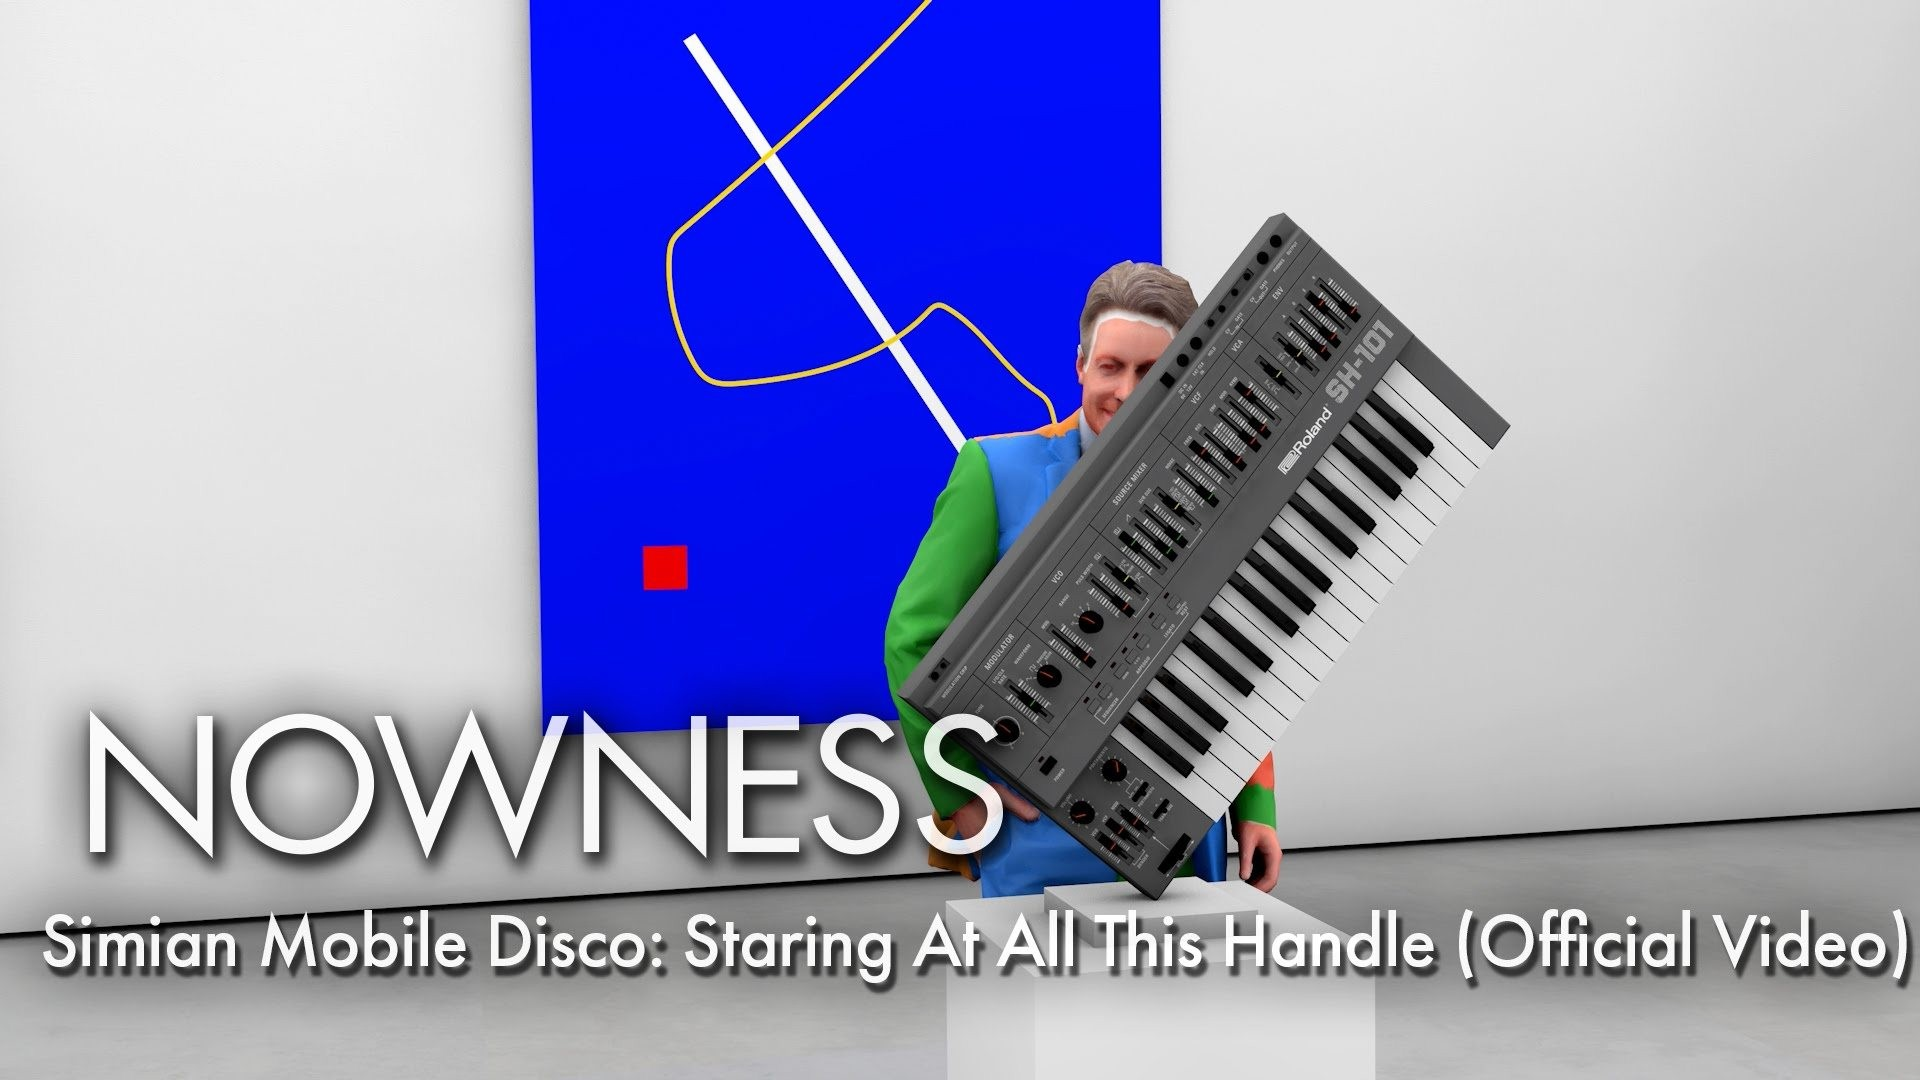 Simian Mobile Disco's Takes Us On a Tour of a Dazzling Virtual Art Gallery